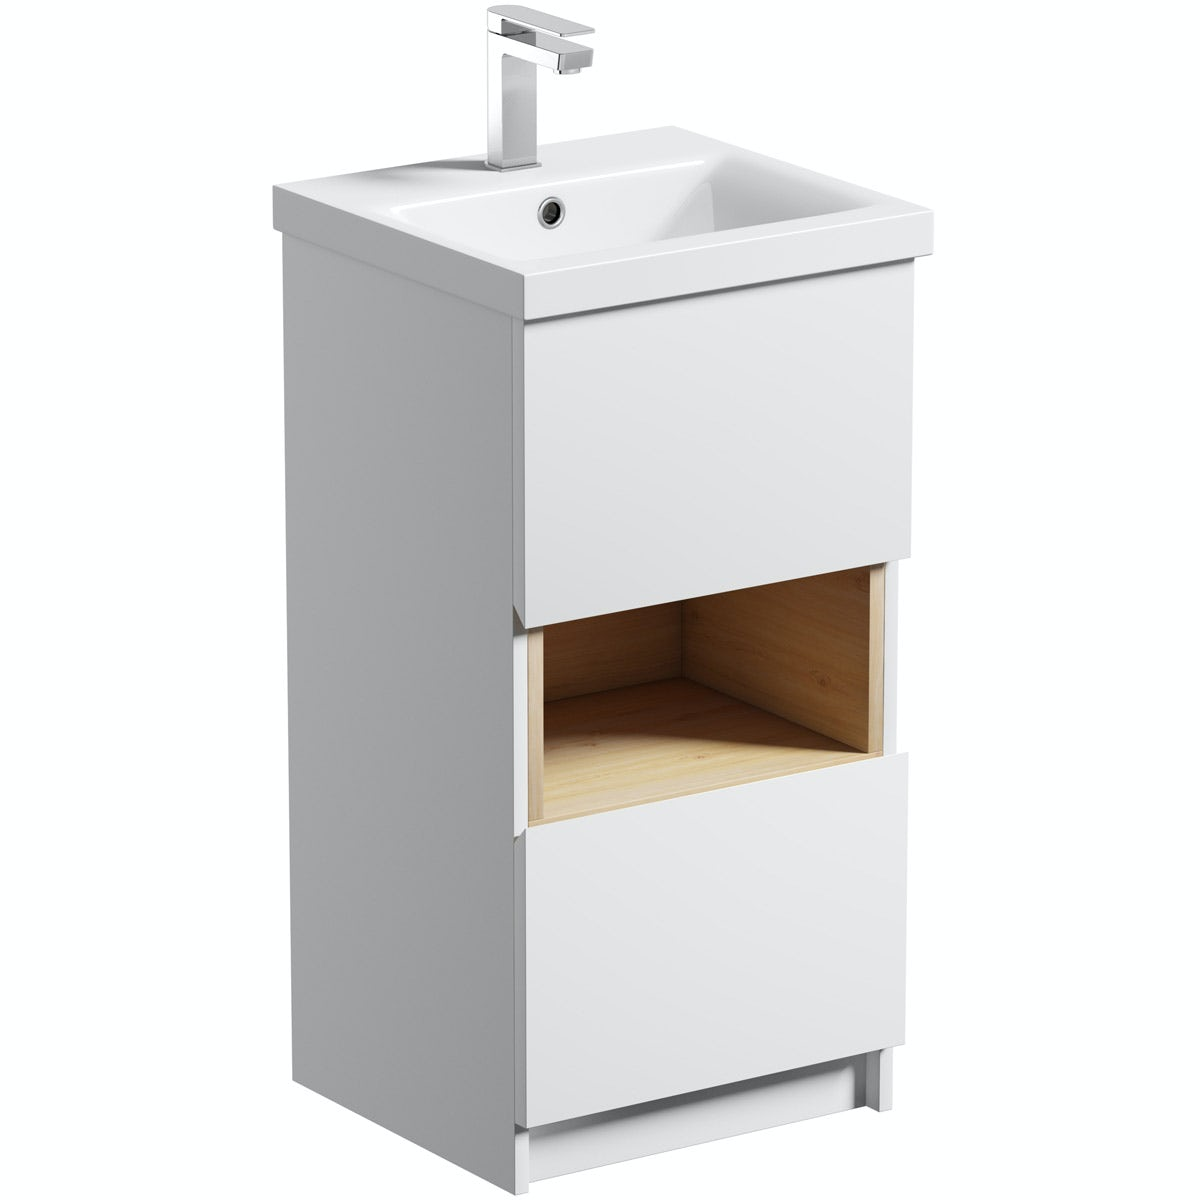 Mode Tate white & oak cloakroom vanity unit 420mm